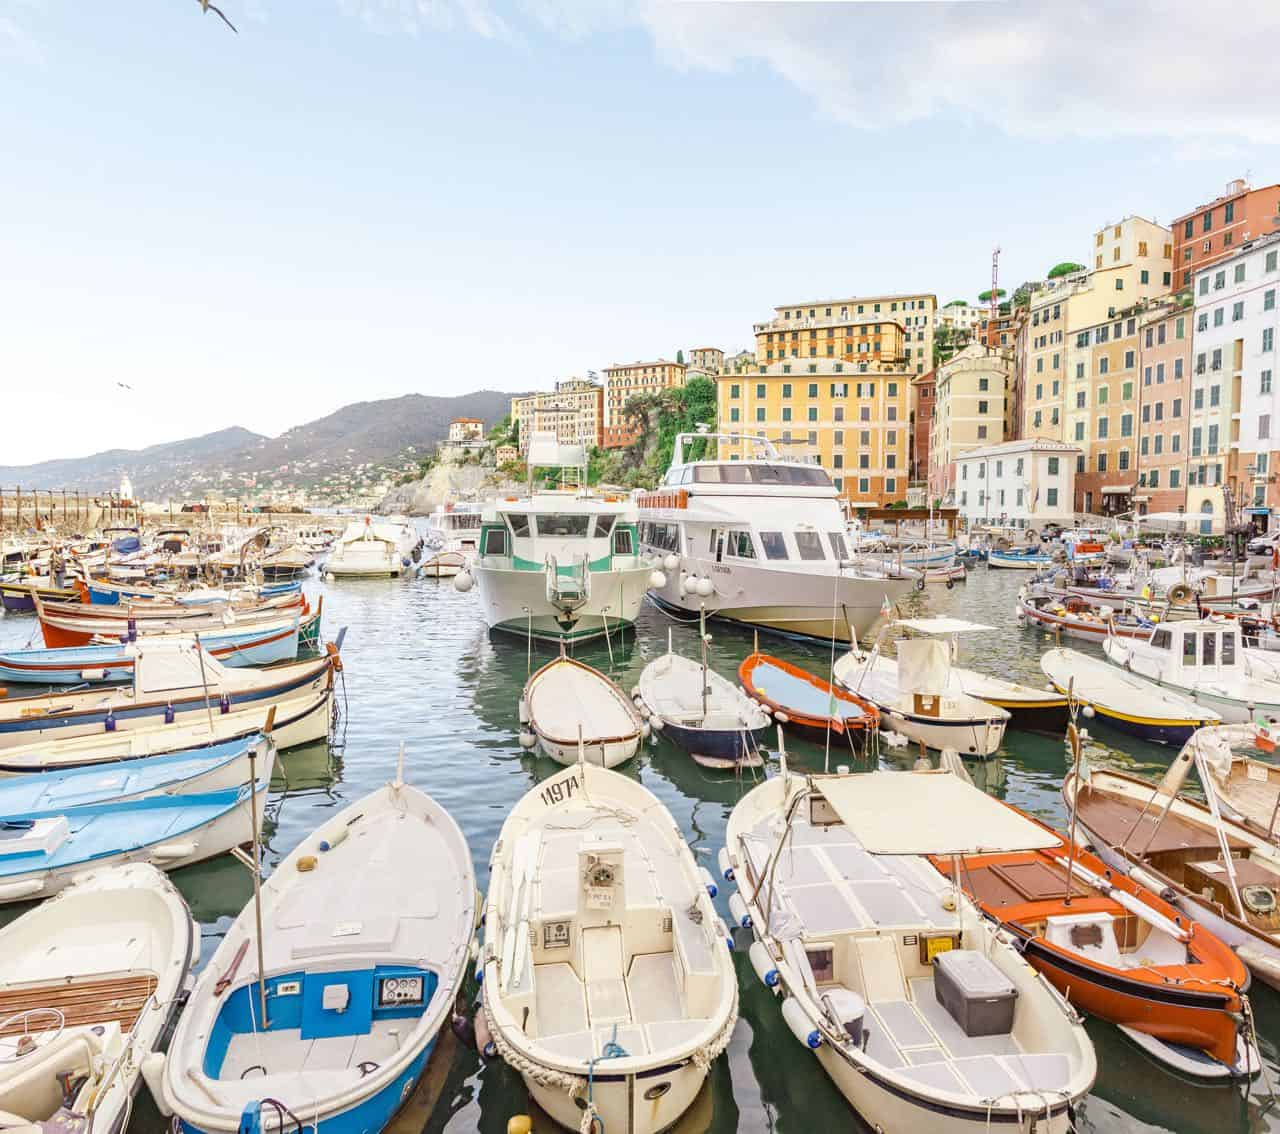 northern Italy itinerary includes Camogli and Genoa region